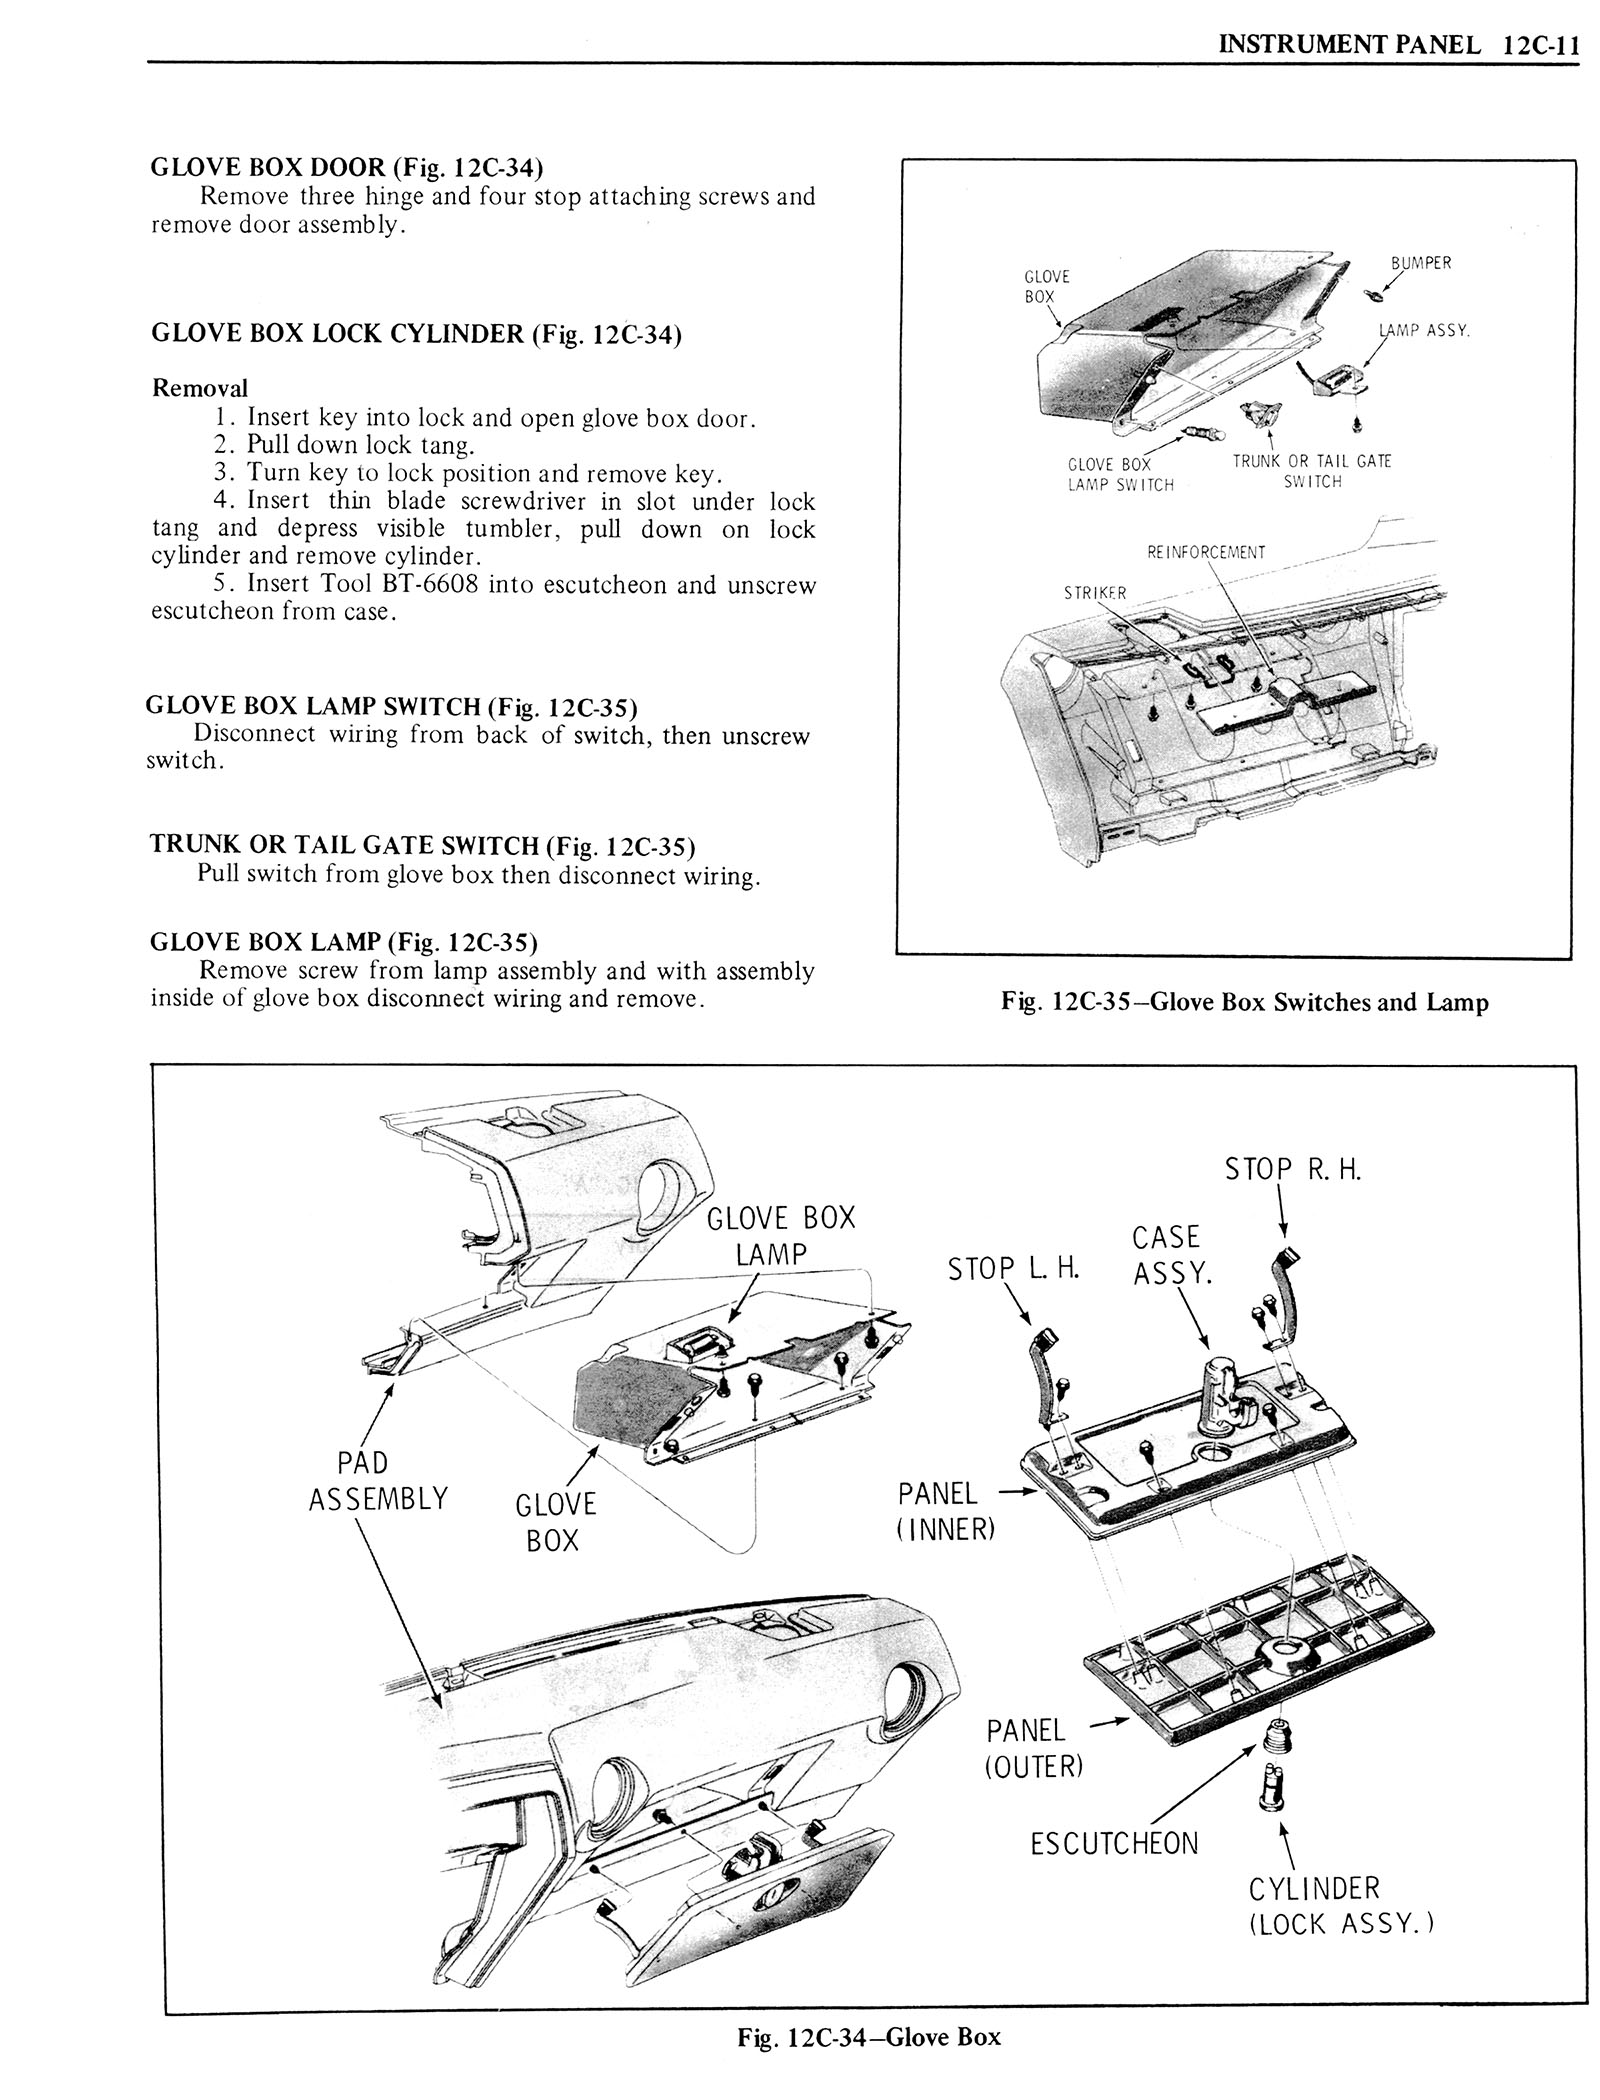 1976 Oldsmobile Service Manual page 1259 of 1390